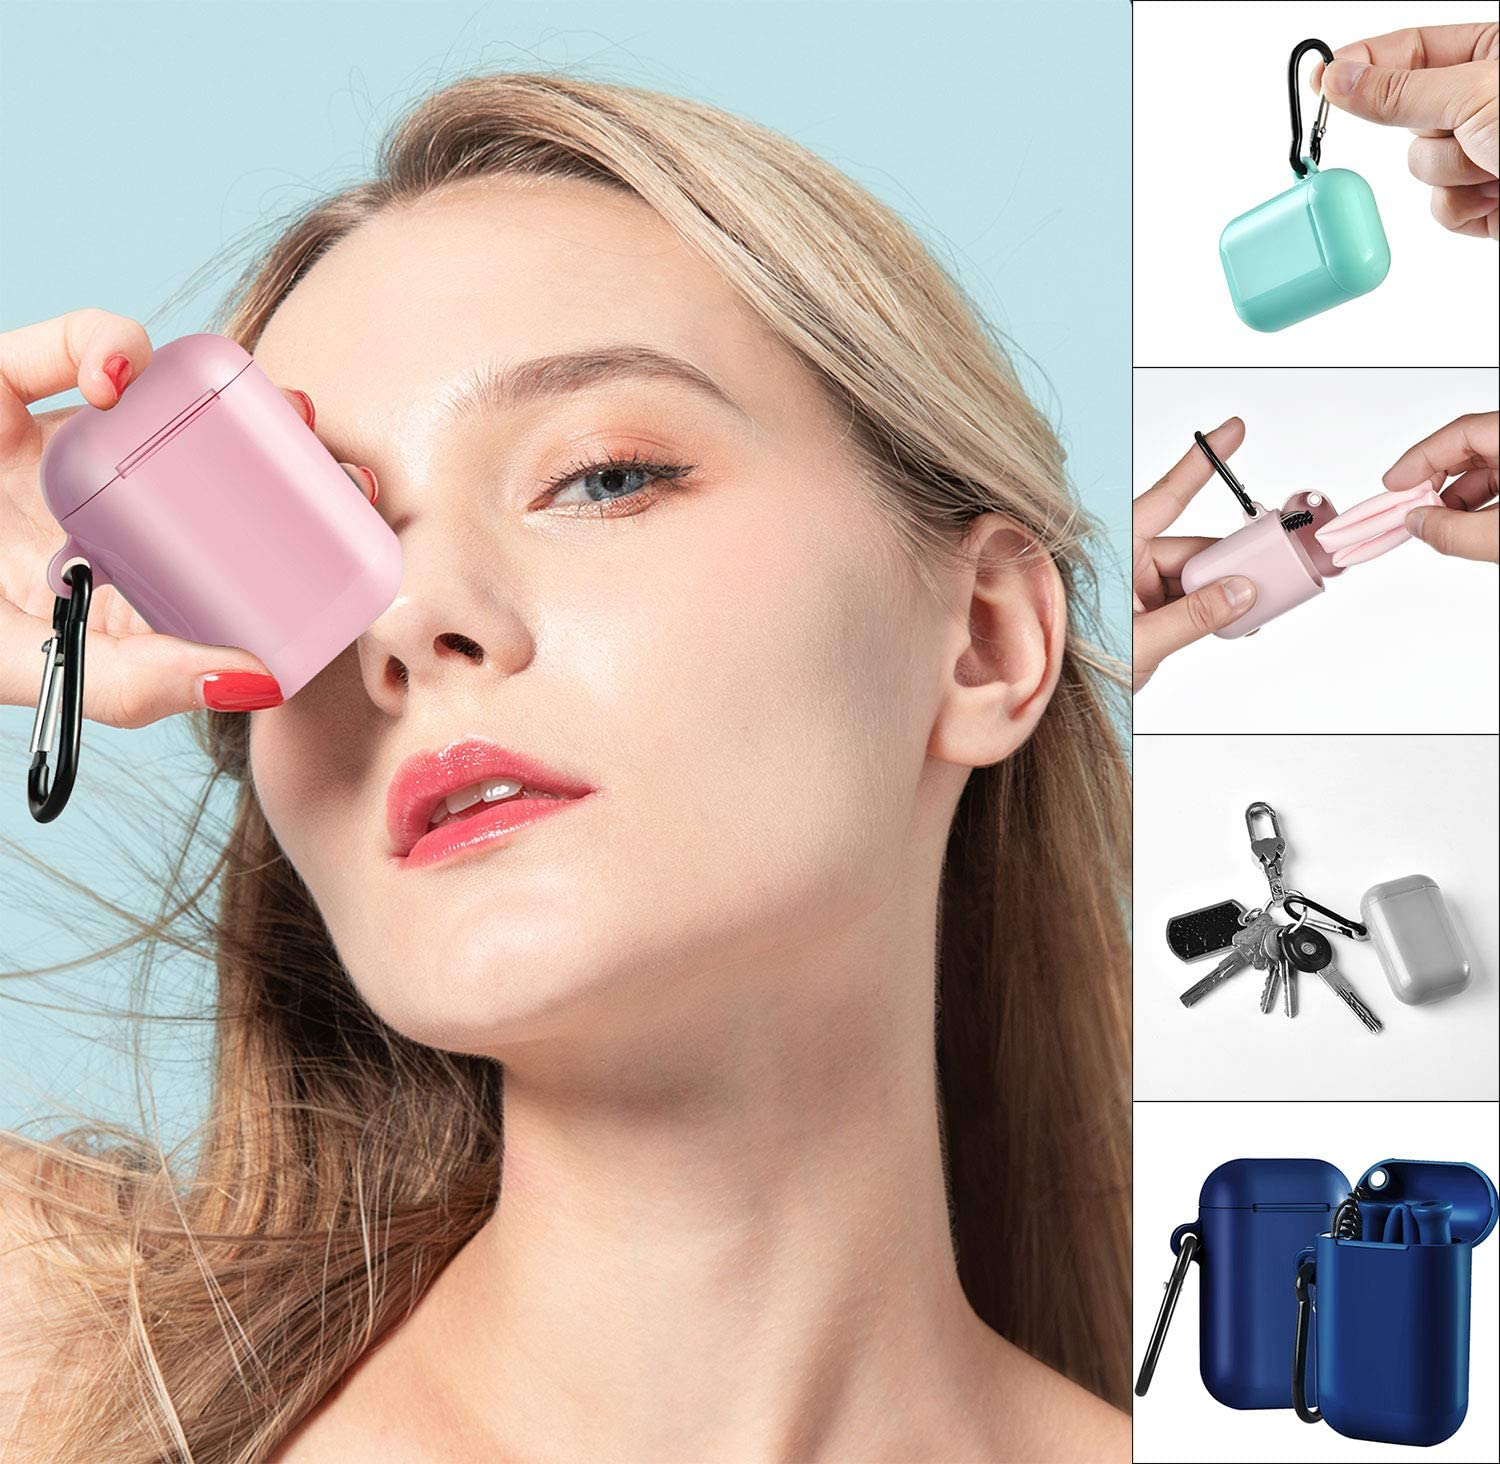 ALINK Reusable Silicone Collapsible Straws BPA Free 4 Pack Portable Drinking Straw with Colorful Carrying Case and Cleaning Brush Pink//Fruit Green//Grass Green//Light Blue)